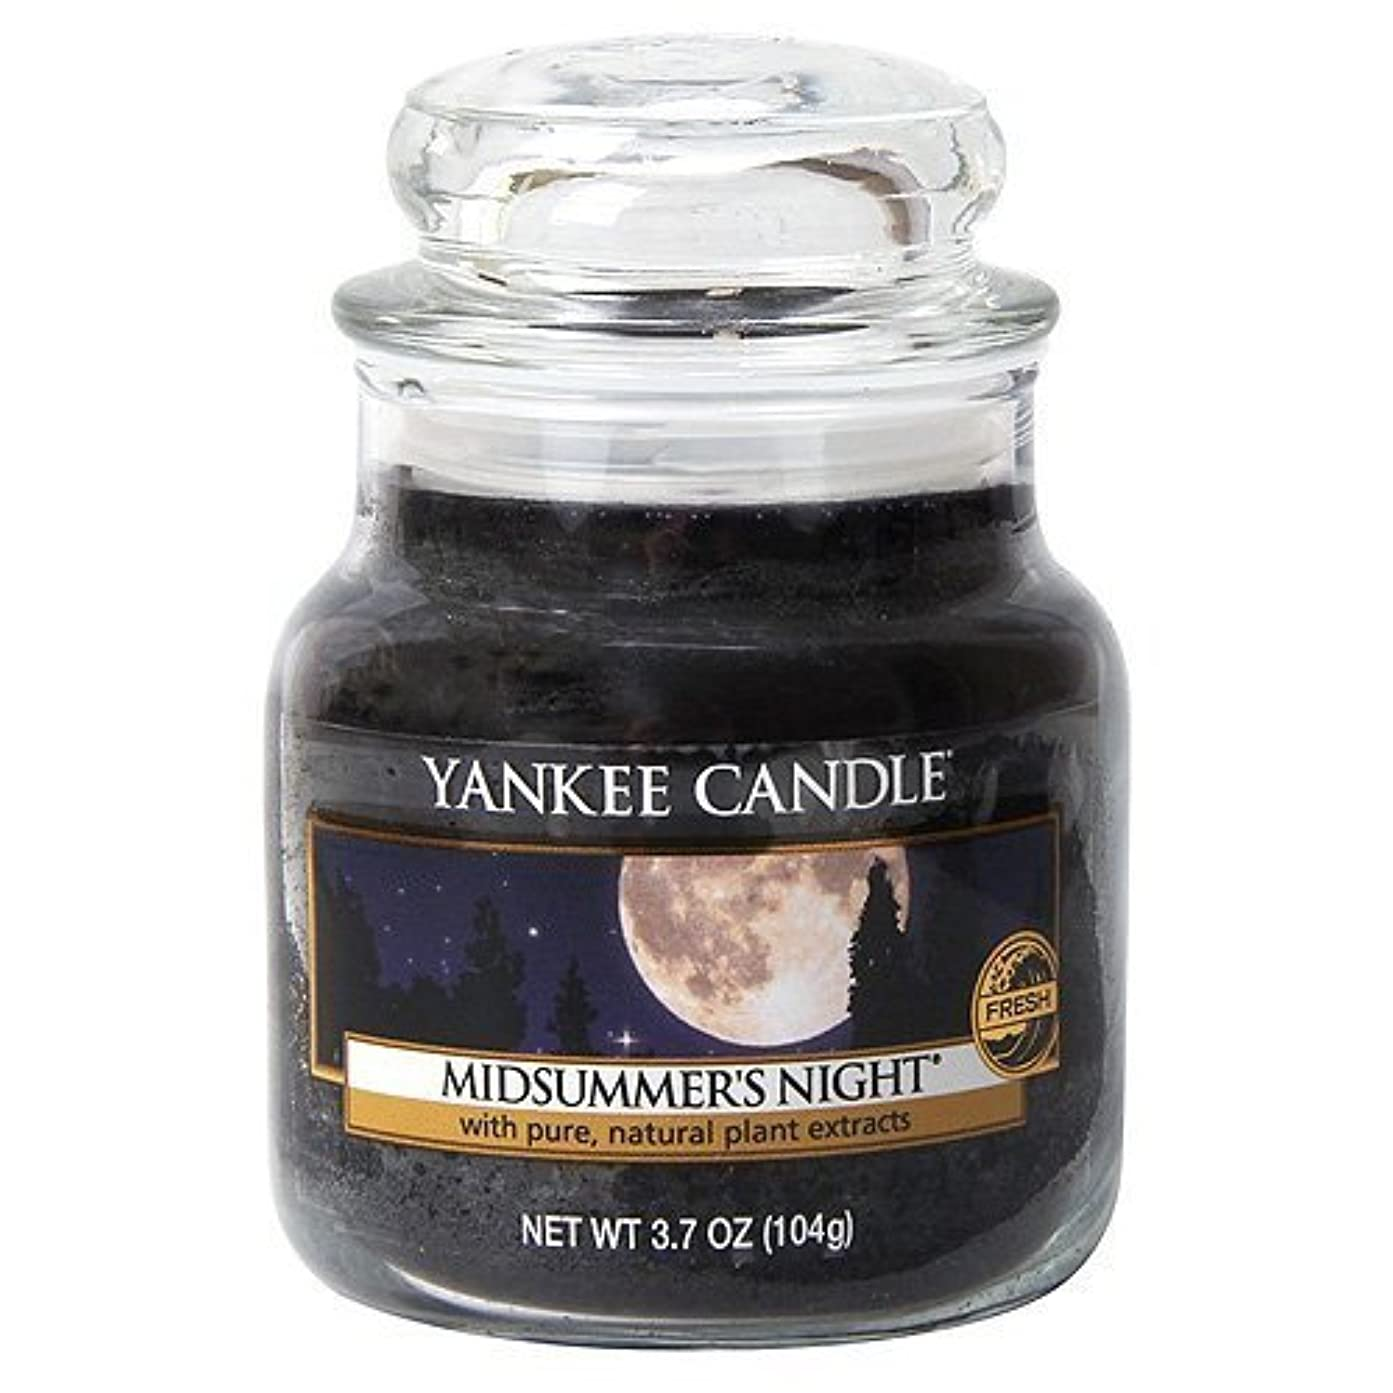 コードレス誰も増幅Yankee Candle Midsummer's Night Small Jar Candle, Fresh Scent by Yankee Candle [並行輸入品]